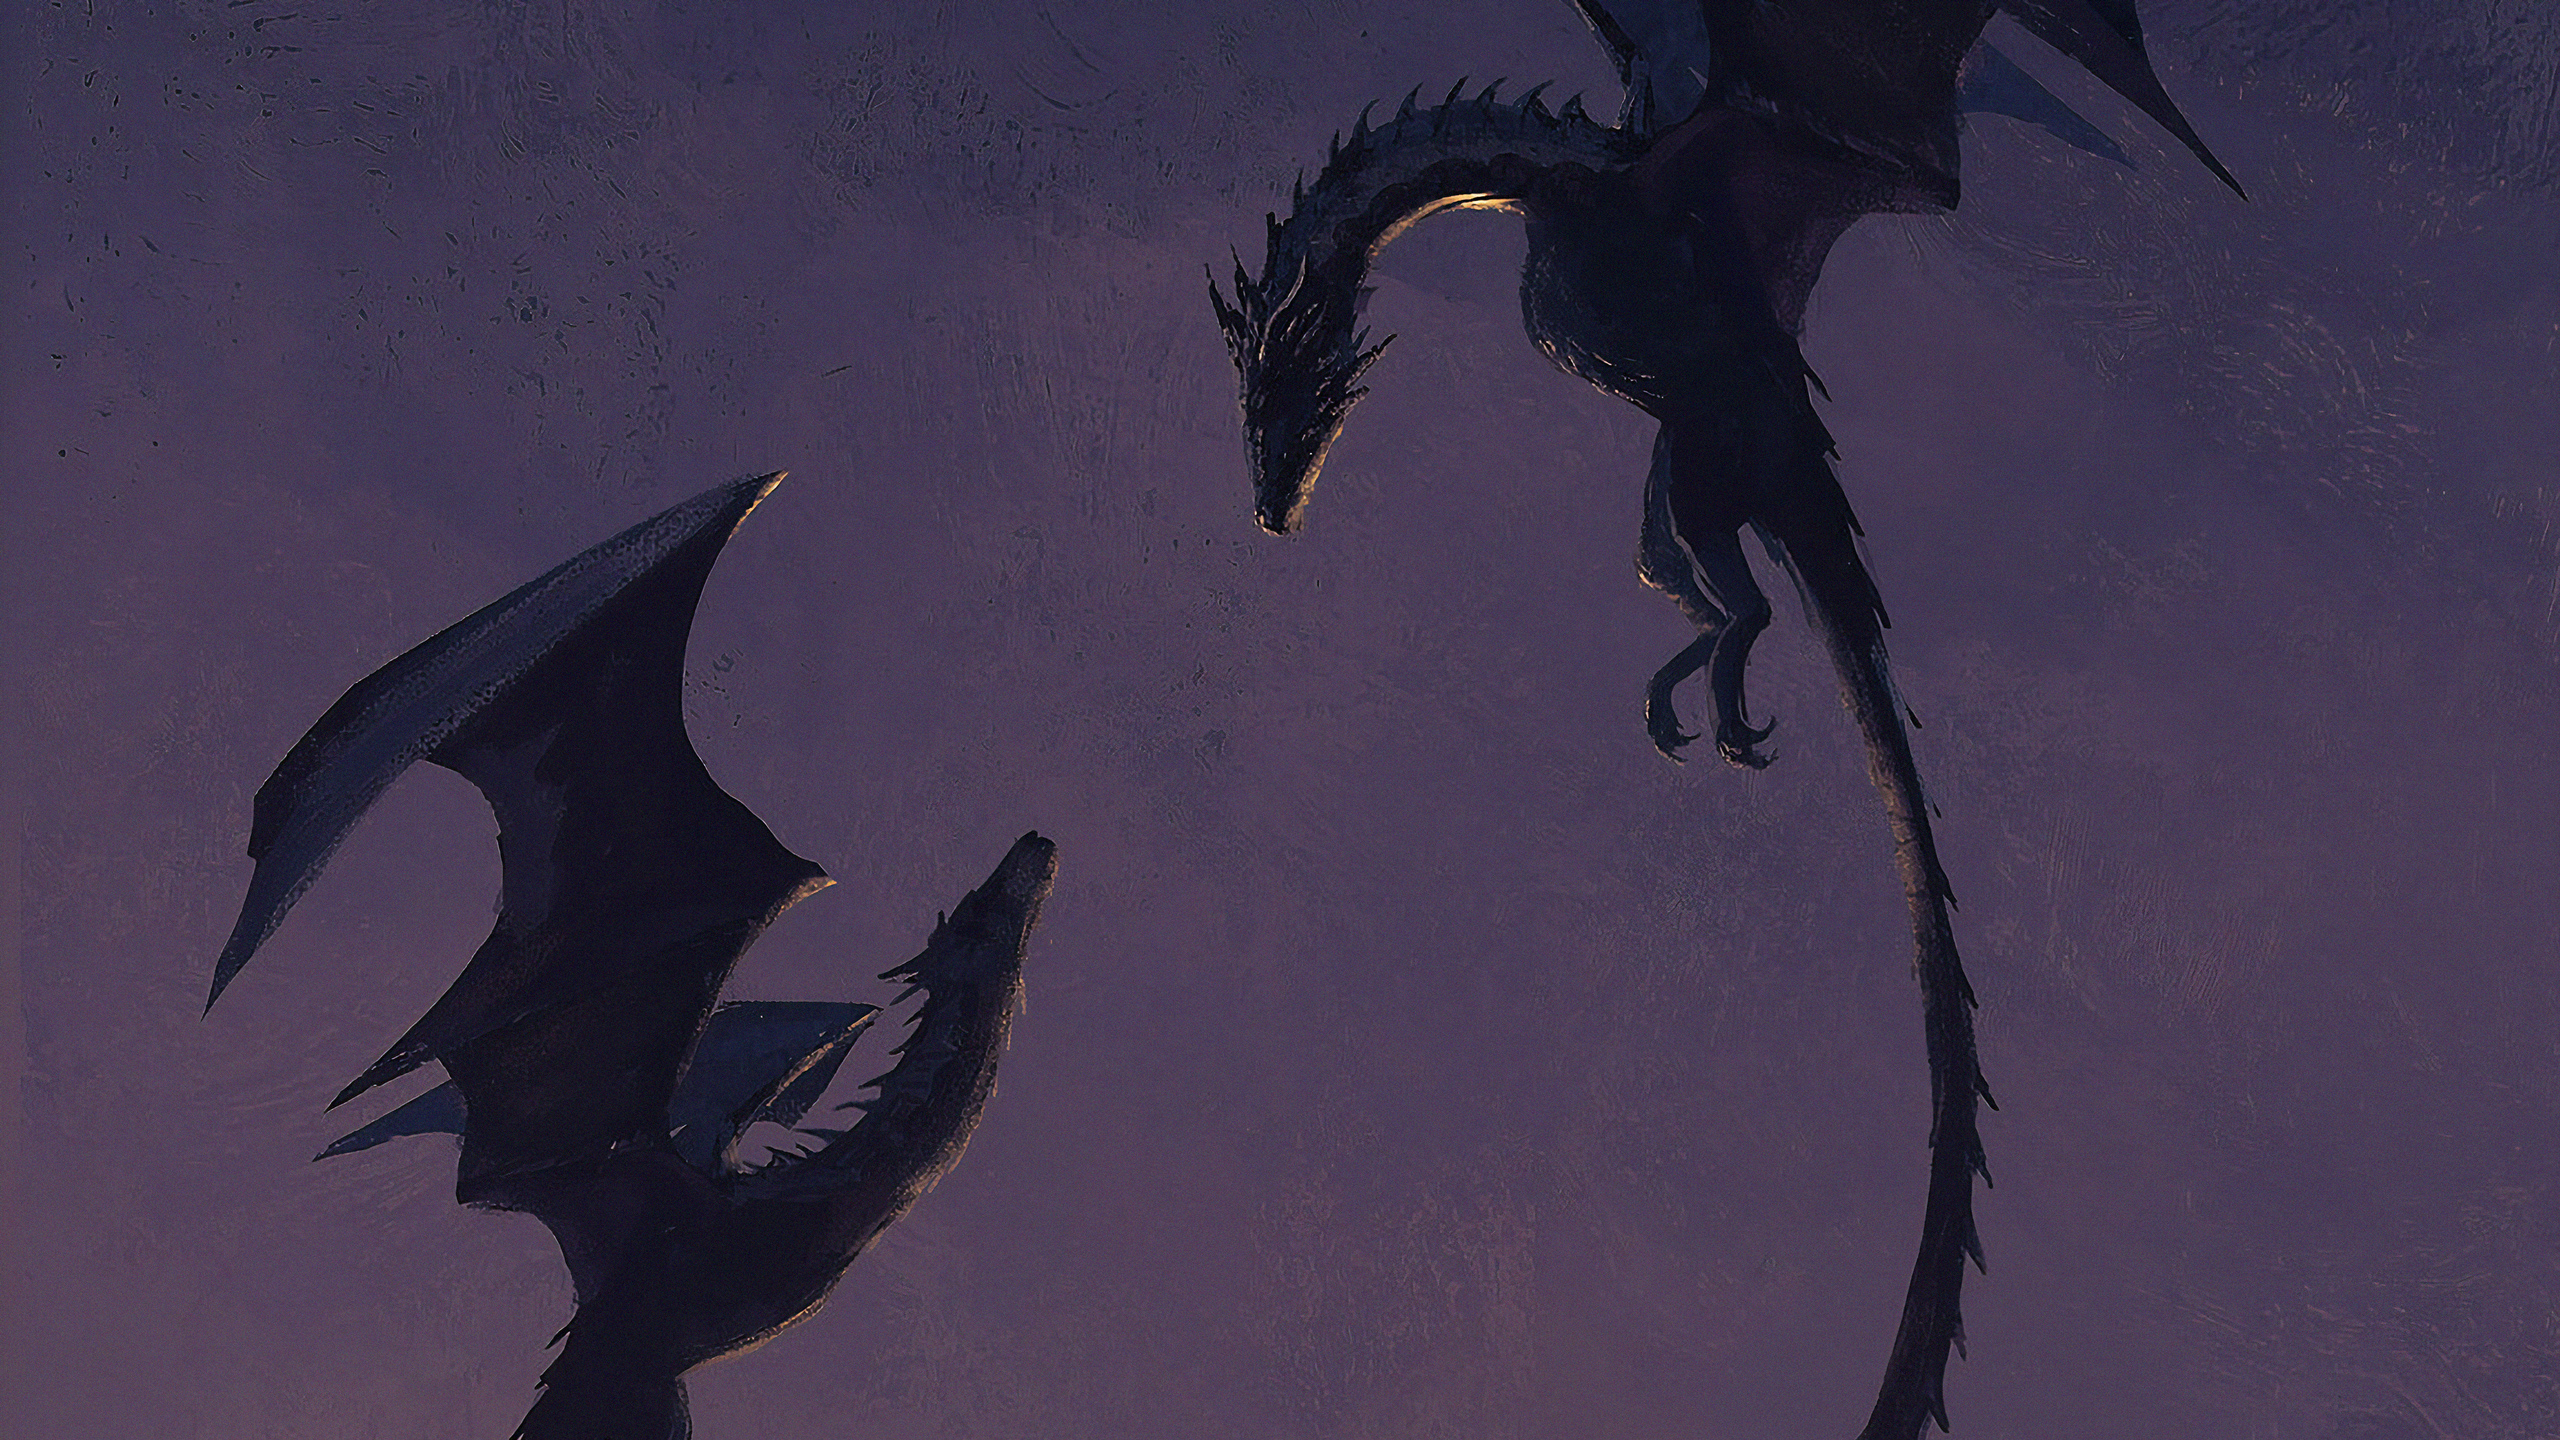 Got Dragon Hd Tv Shows 4k Wallpapers Images Backgrounds